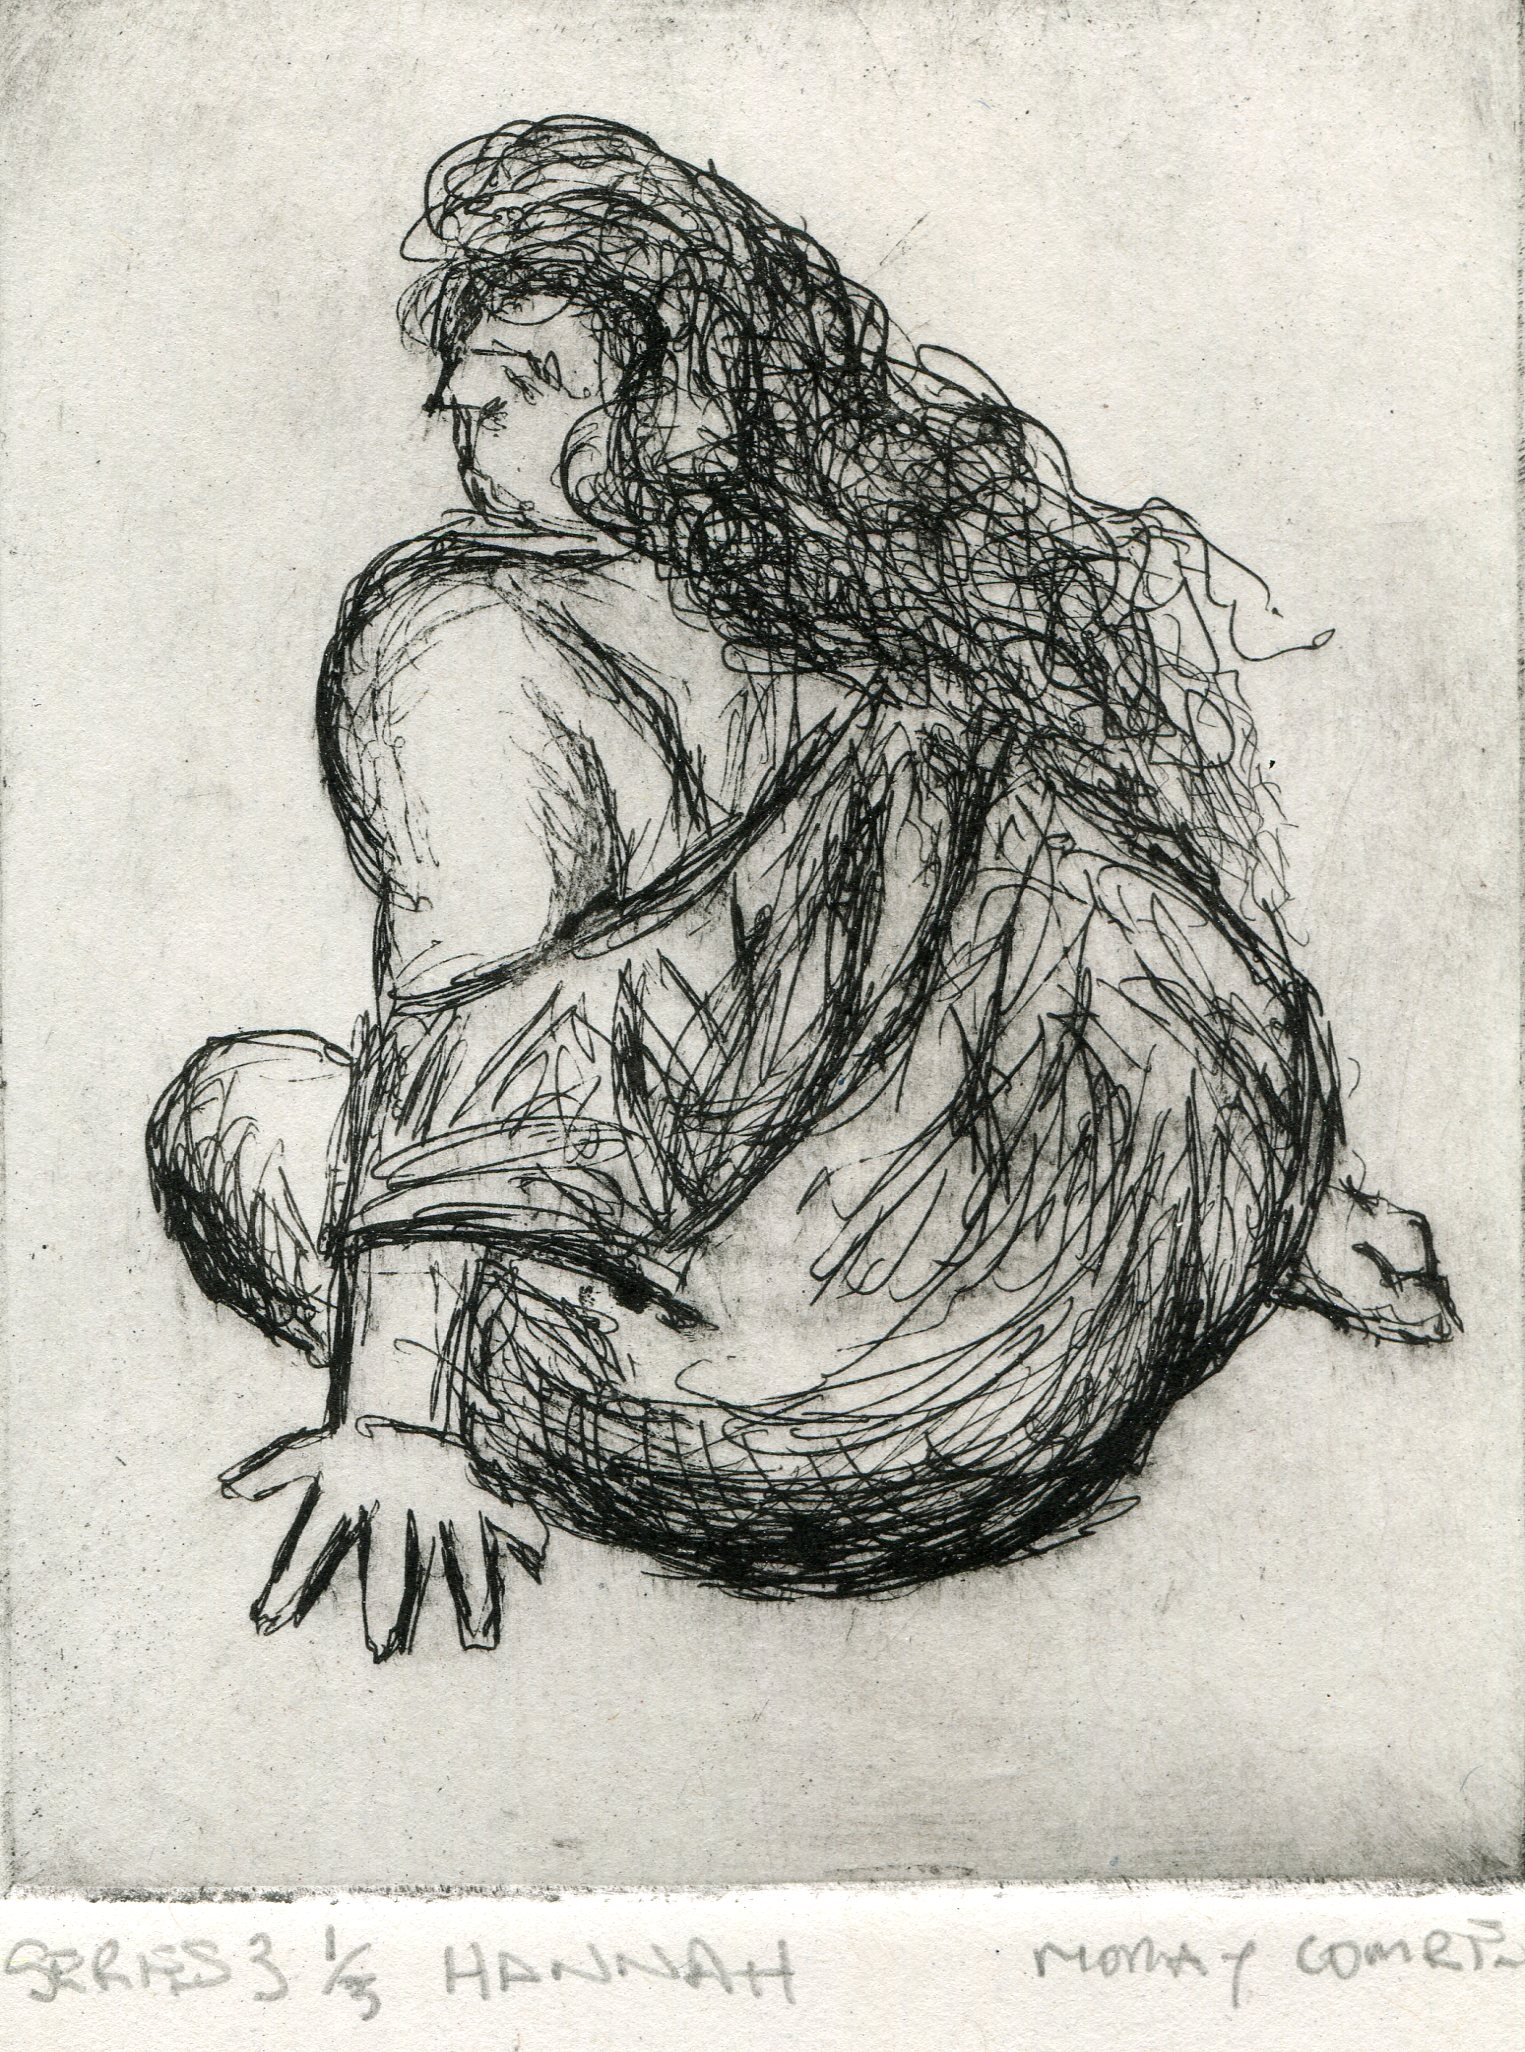 12a  Moray Comrie  Hannah  etching on paper